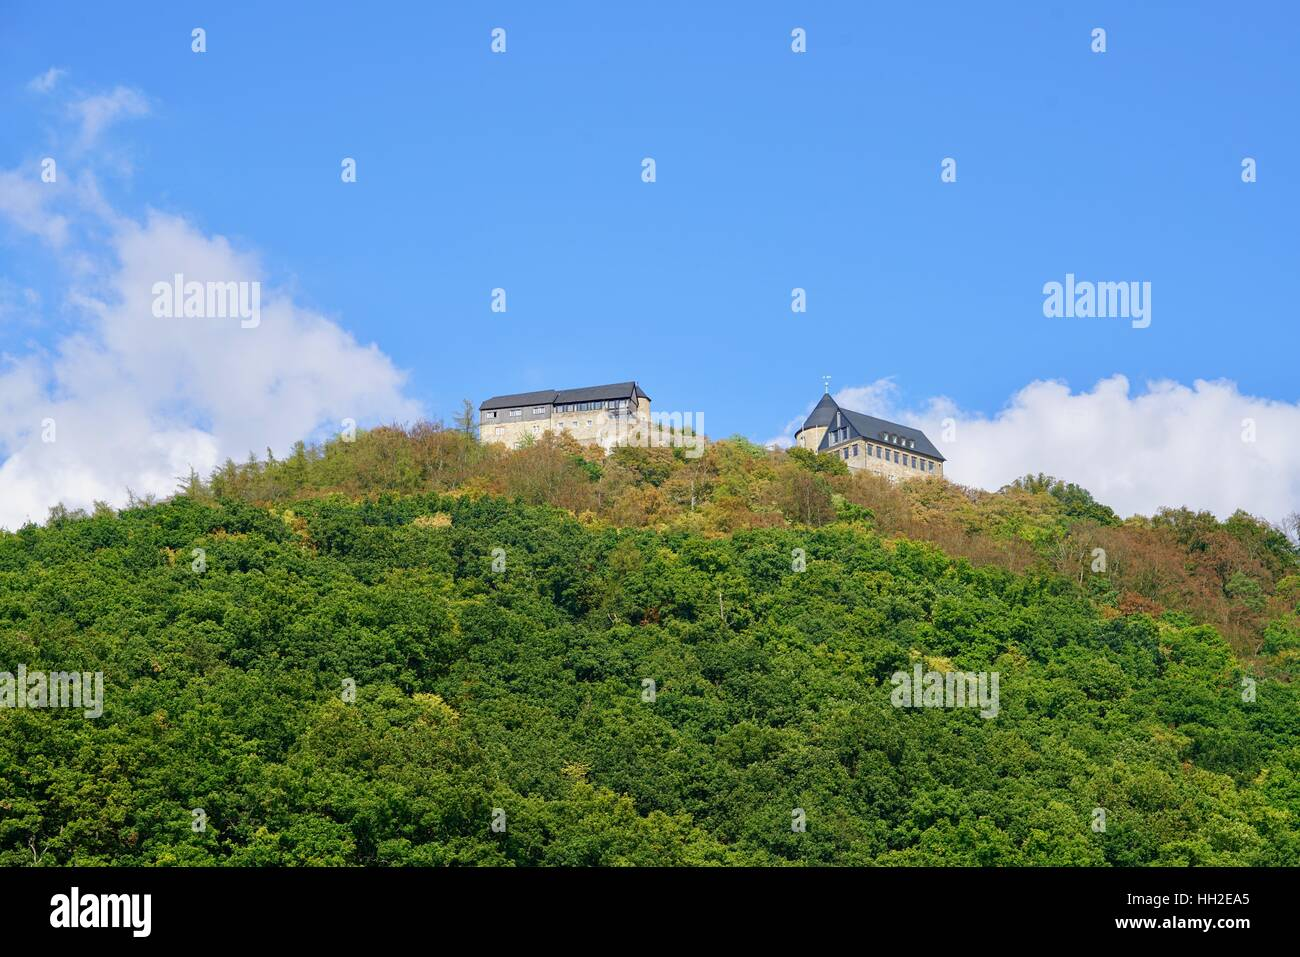 castle of Waldeck, view from the Edersee - Stock Image